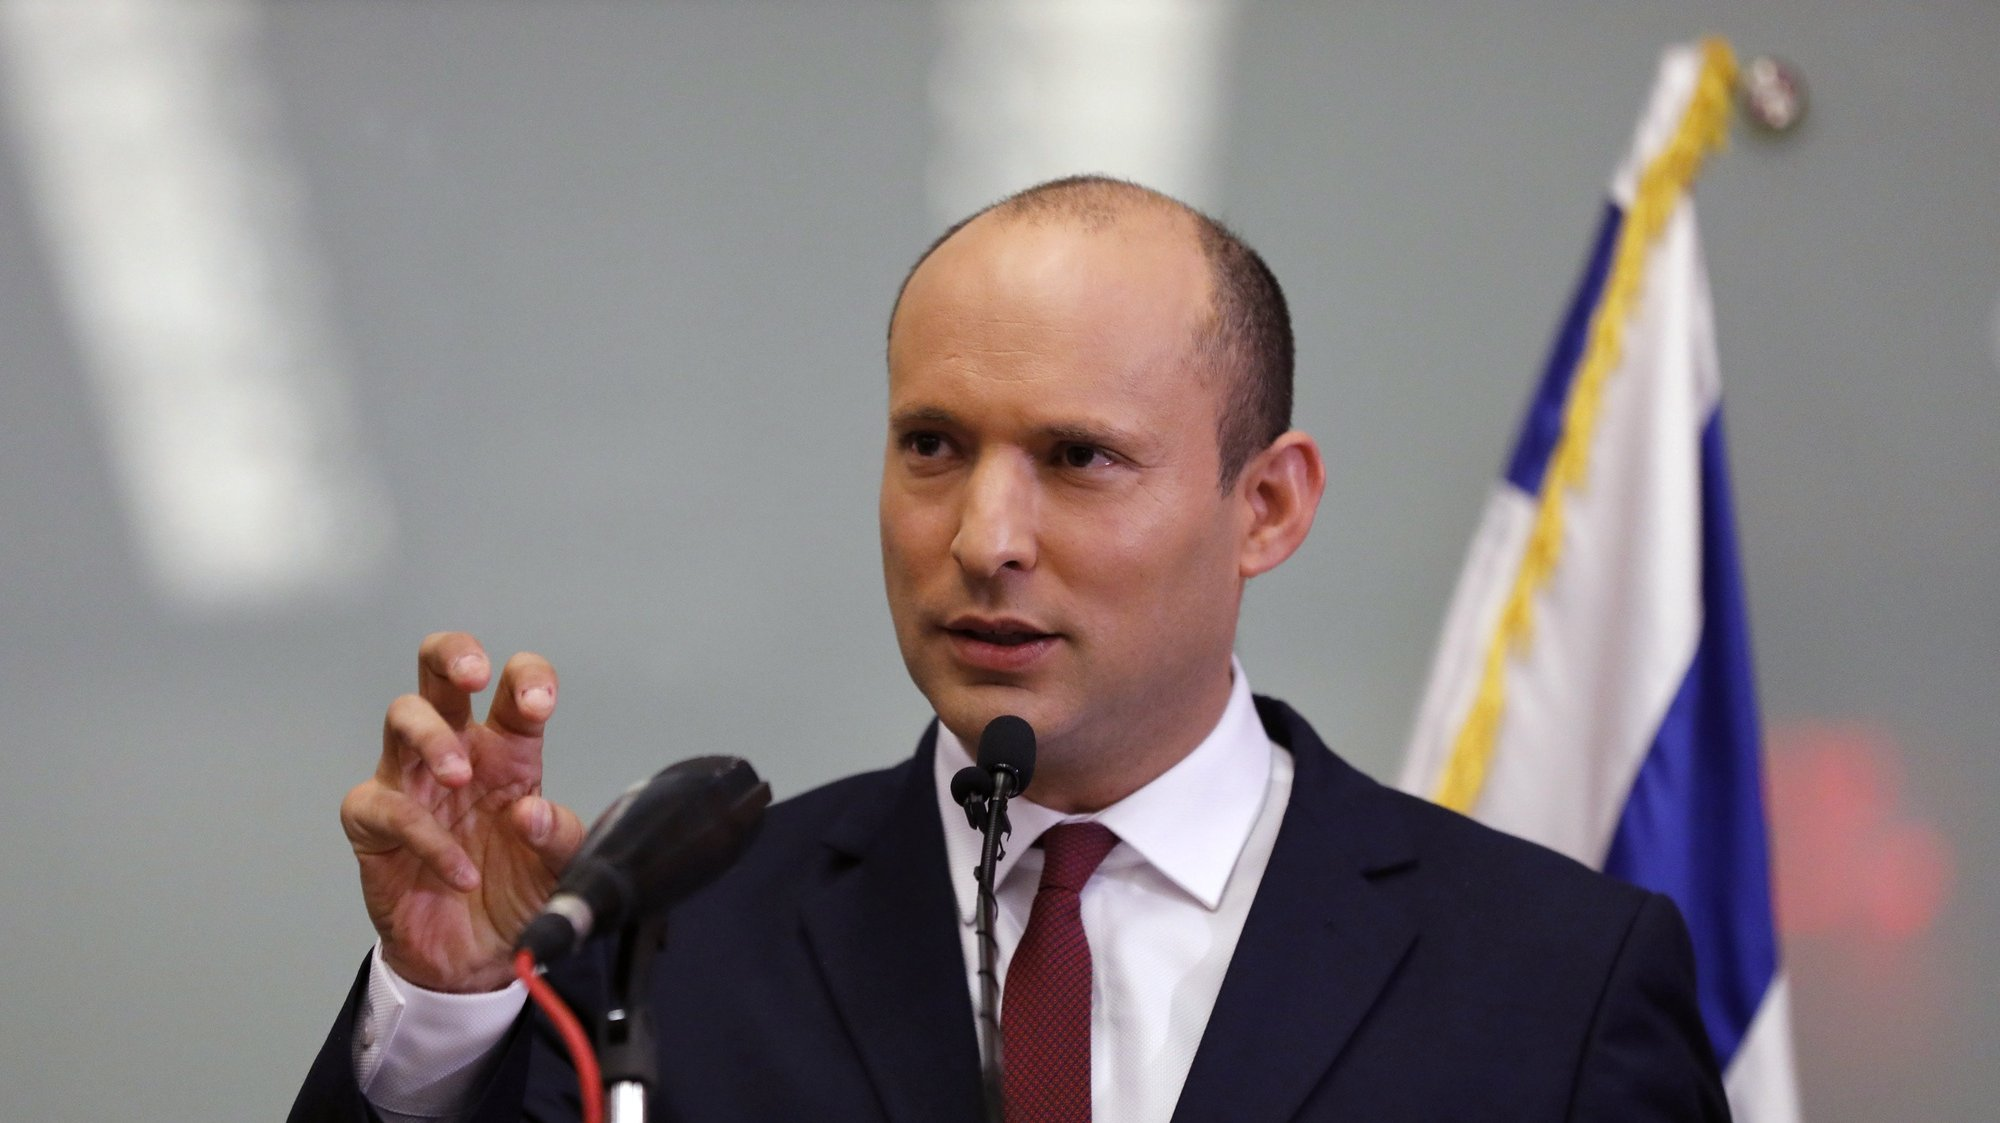 epa07176686 Israeli Minister of Education Naftali Bennet speaks during a press conference in the Israeli Knesset, (Israeli Parliament), in Jerusalem, 19 November 2018. Media reports state that the Netanyahu government will not go to early elections after Naftali Bennett and Ayelet Shaked of the Jewish Home Party decided not to resign from the coalition. The elections are scheduled to take place in November 2019  EPA/ABIR SULTAN